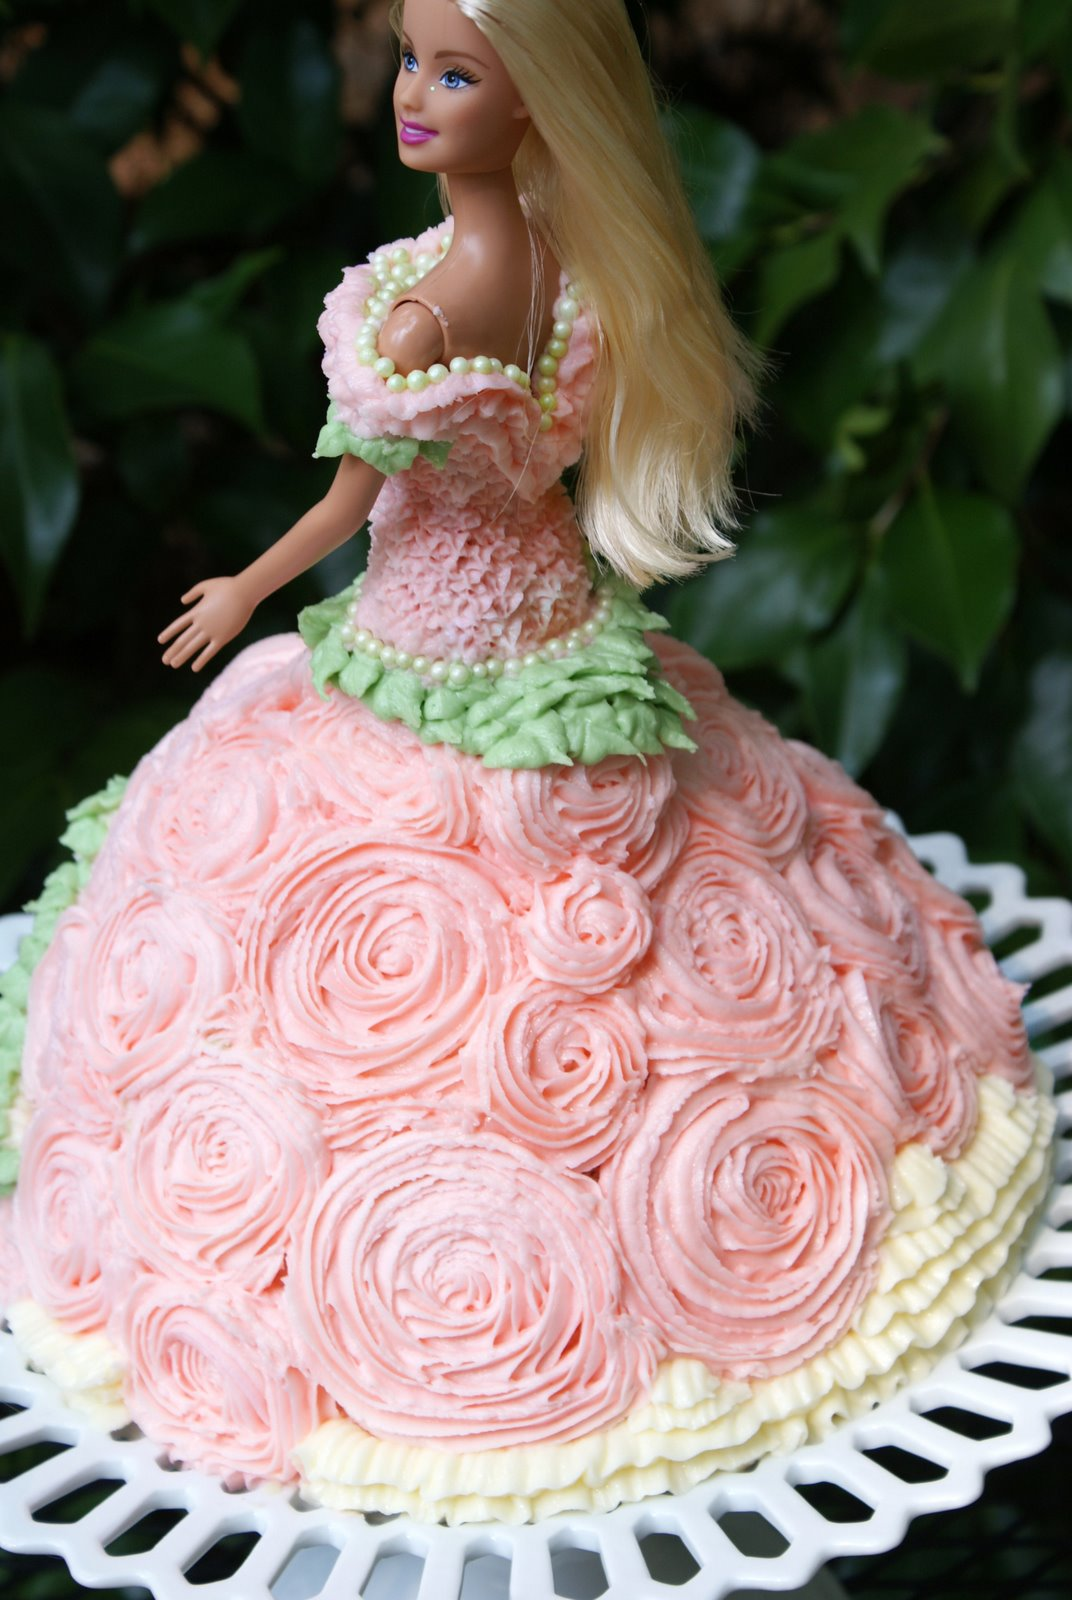 Cake Decorating Degree